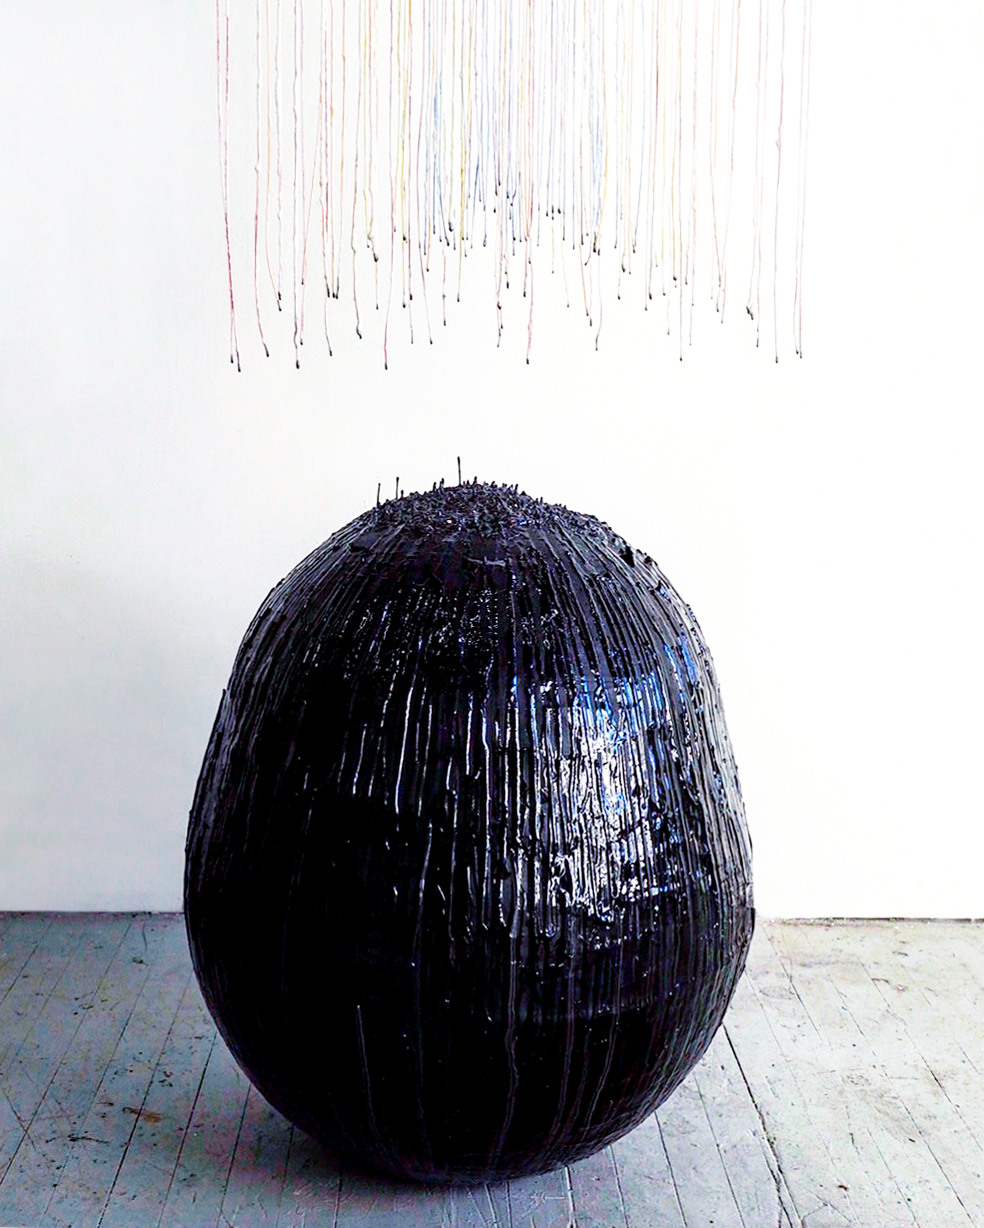 Alison Kudlow,  Gravitational Space,  Resin, silver-leaf, embroidery thread, and mixed media, 85 x 35 x 35 inches